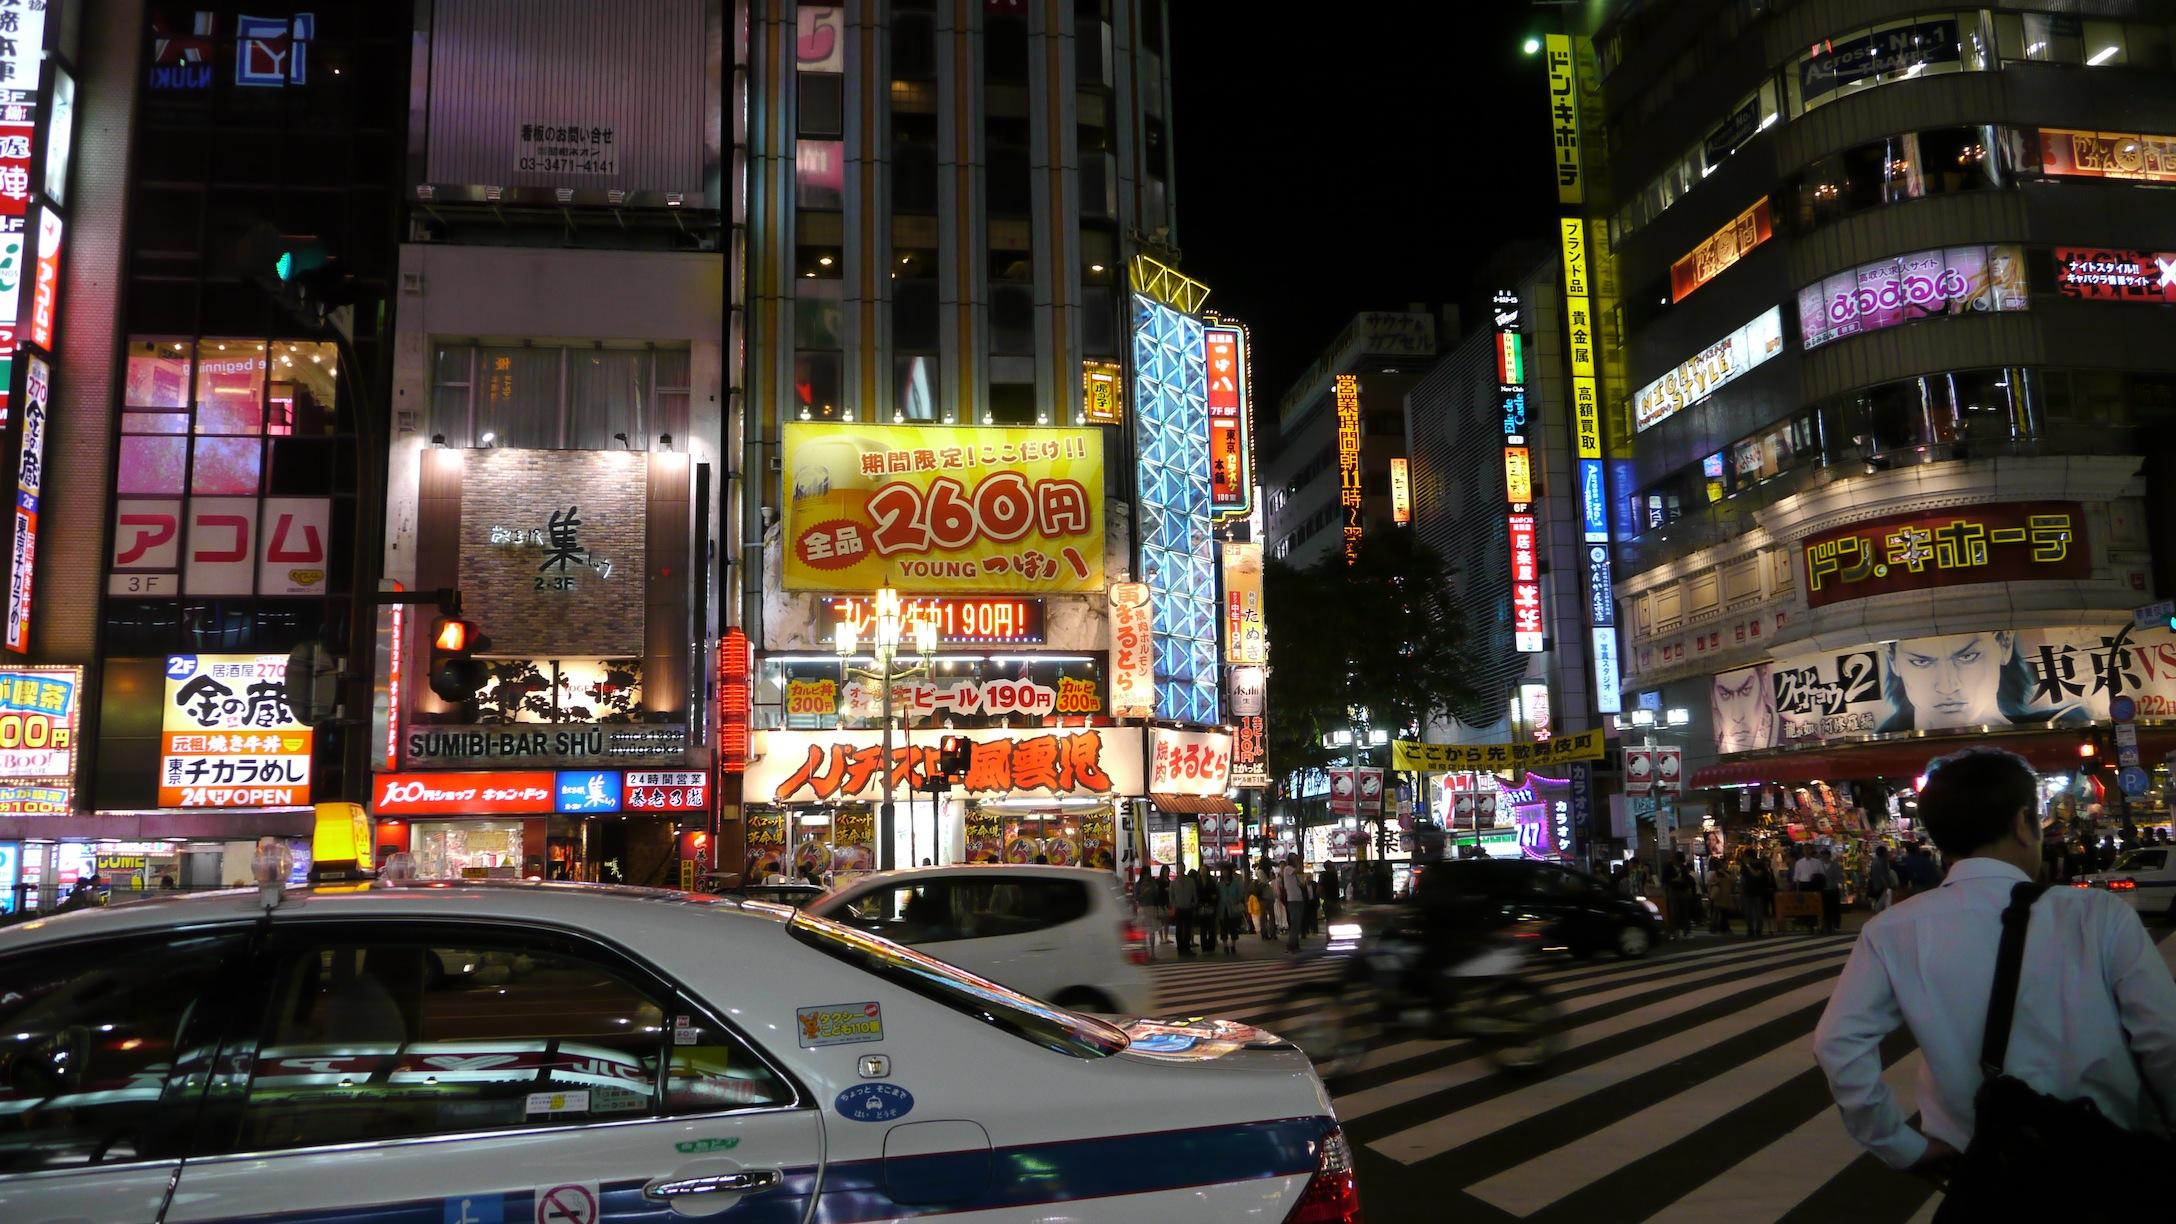 Shinjuku After Dark: Baseball, Darts, and Rod Stewart Clones